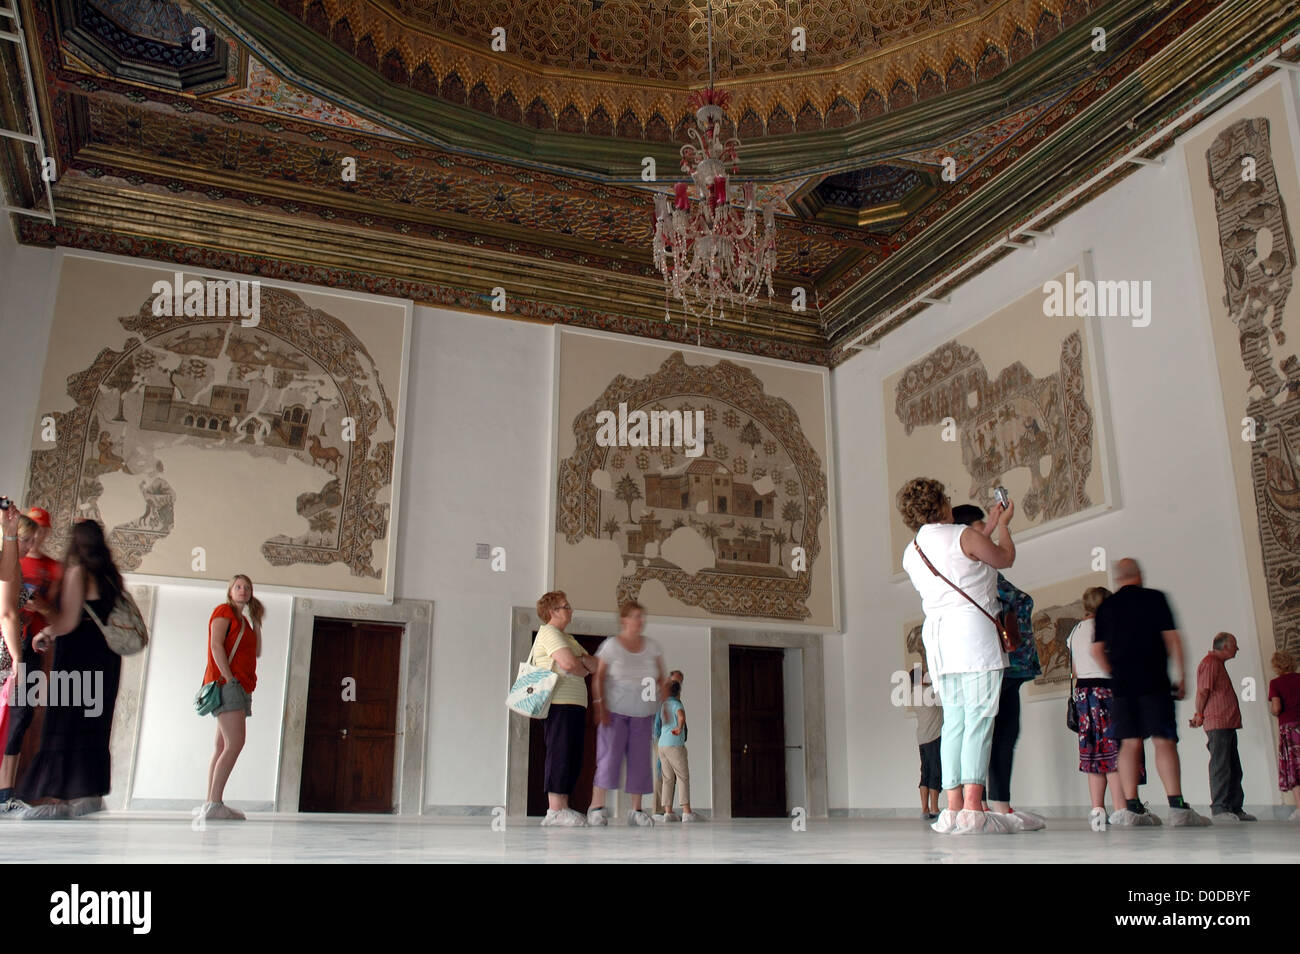 Tourists admire the mosaics at the Bardo Museum in Tunis, Tunisia Stock Photo